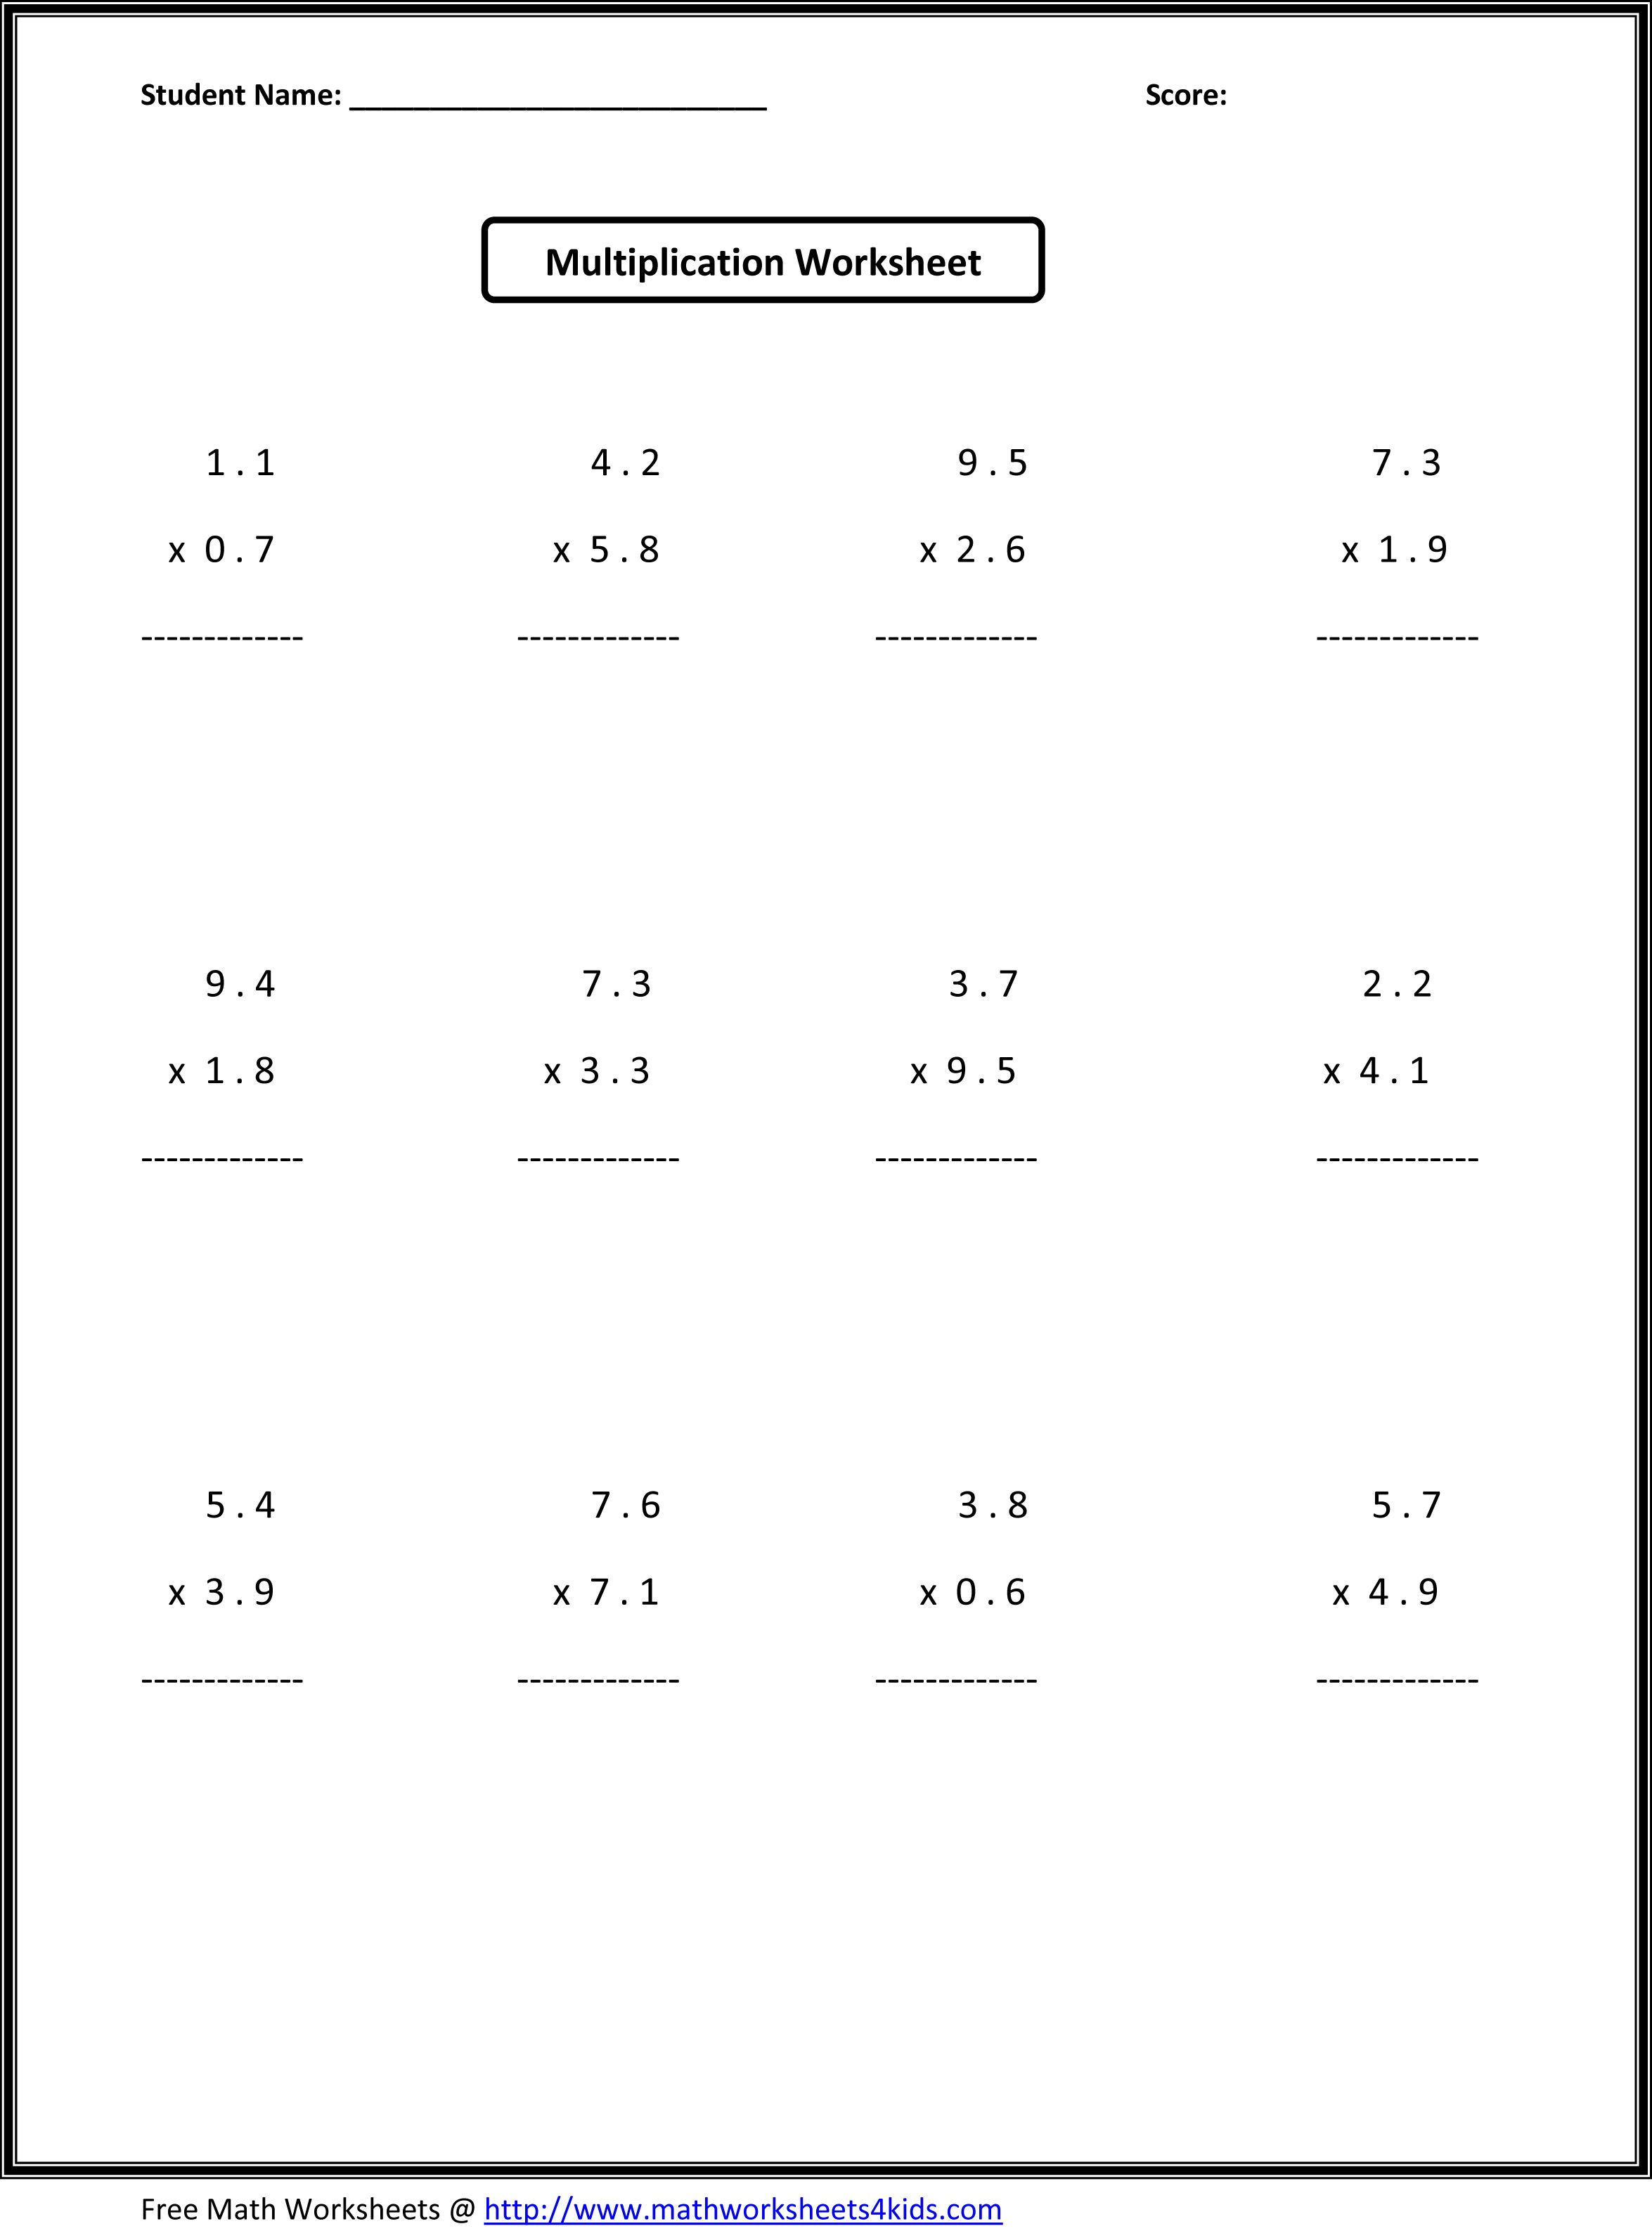 Worksheets 6th Grade Math Worksheet math decimals worksheets riddles 4th 5th 6th 7th grade sixth have ratio multiplying and dividing fractions algebraic expressions equations inequalities geom